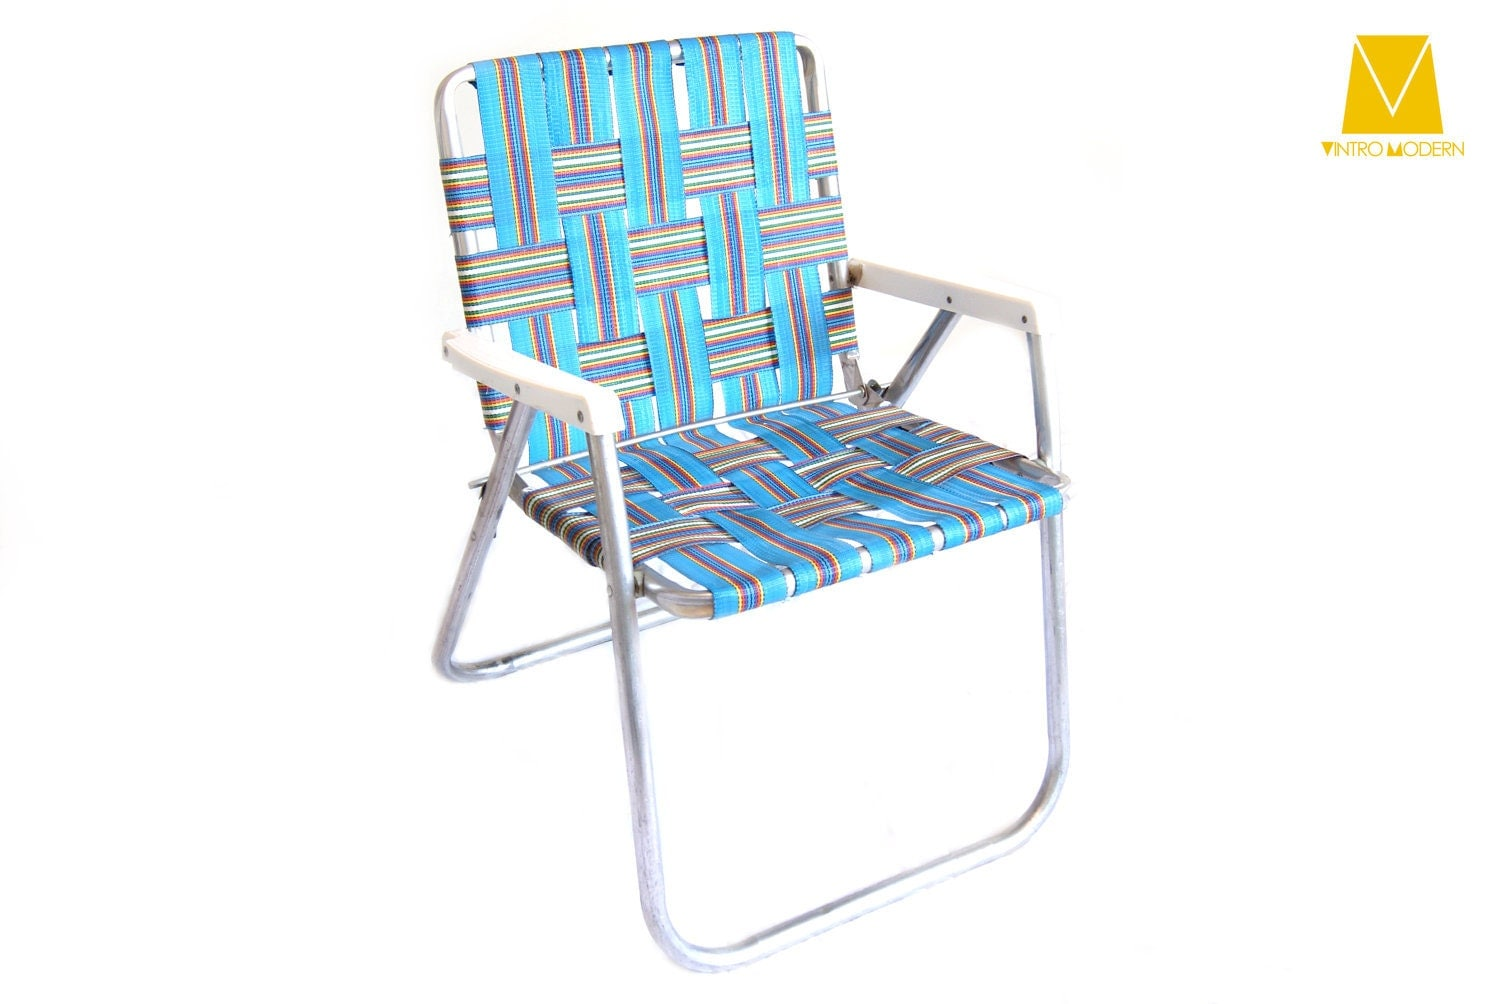 Nylon Aluminum Lawn Chair Rainbow Sale By Vintromodern On Etsy